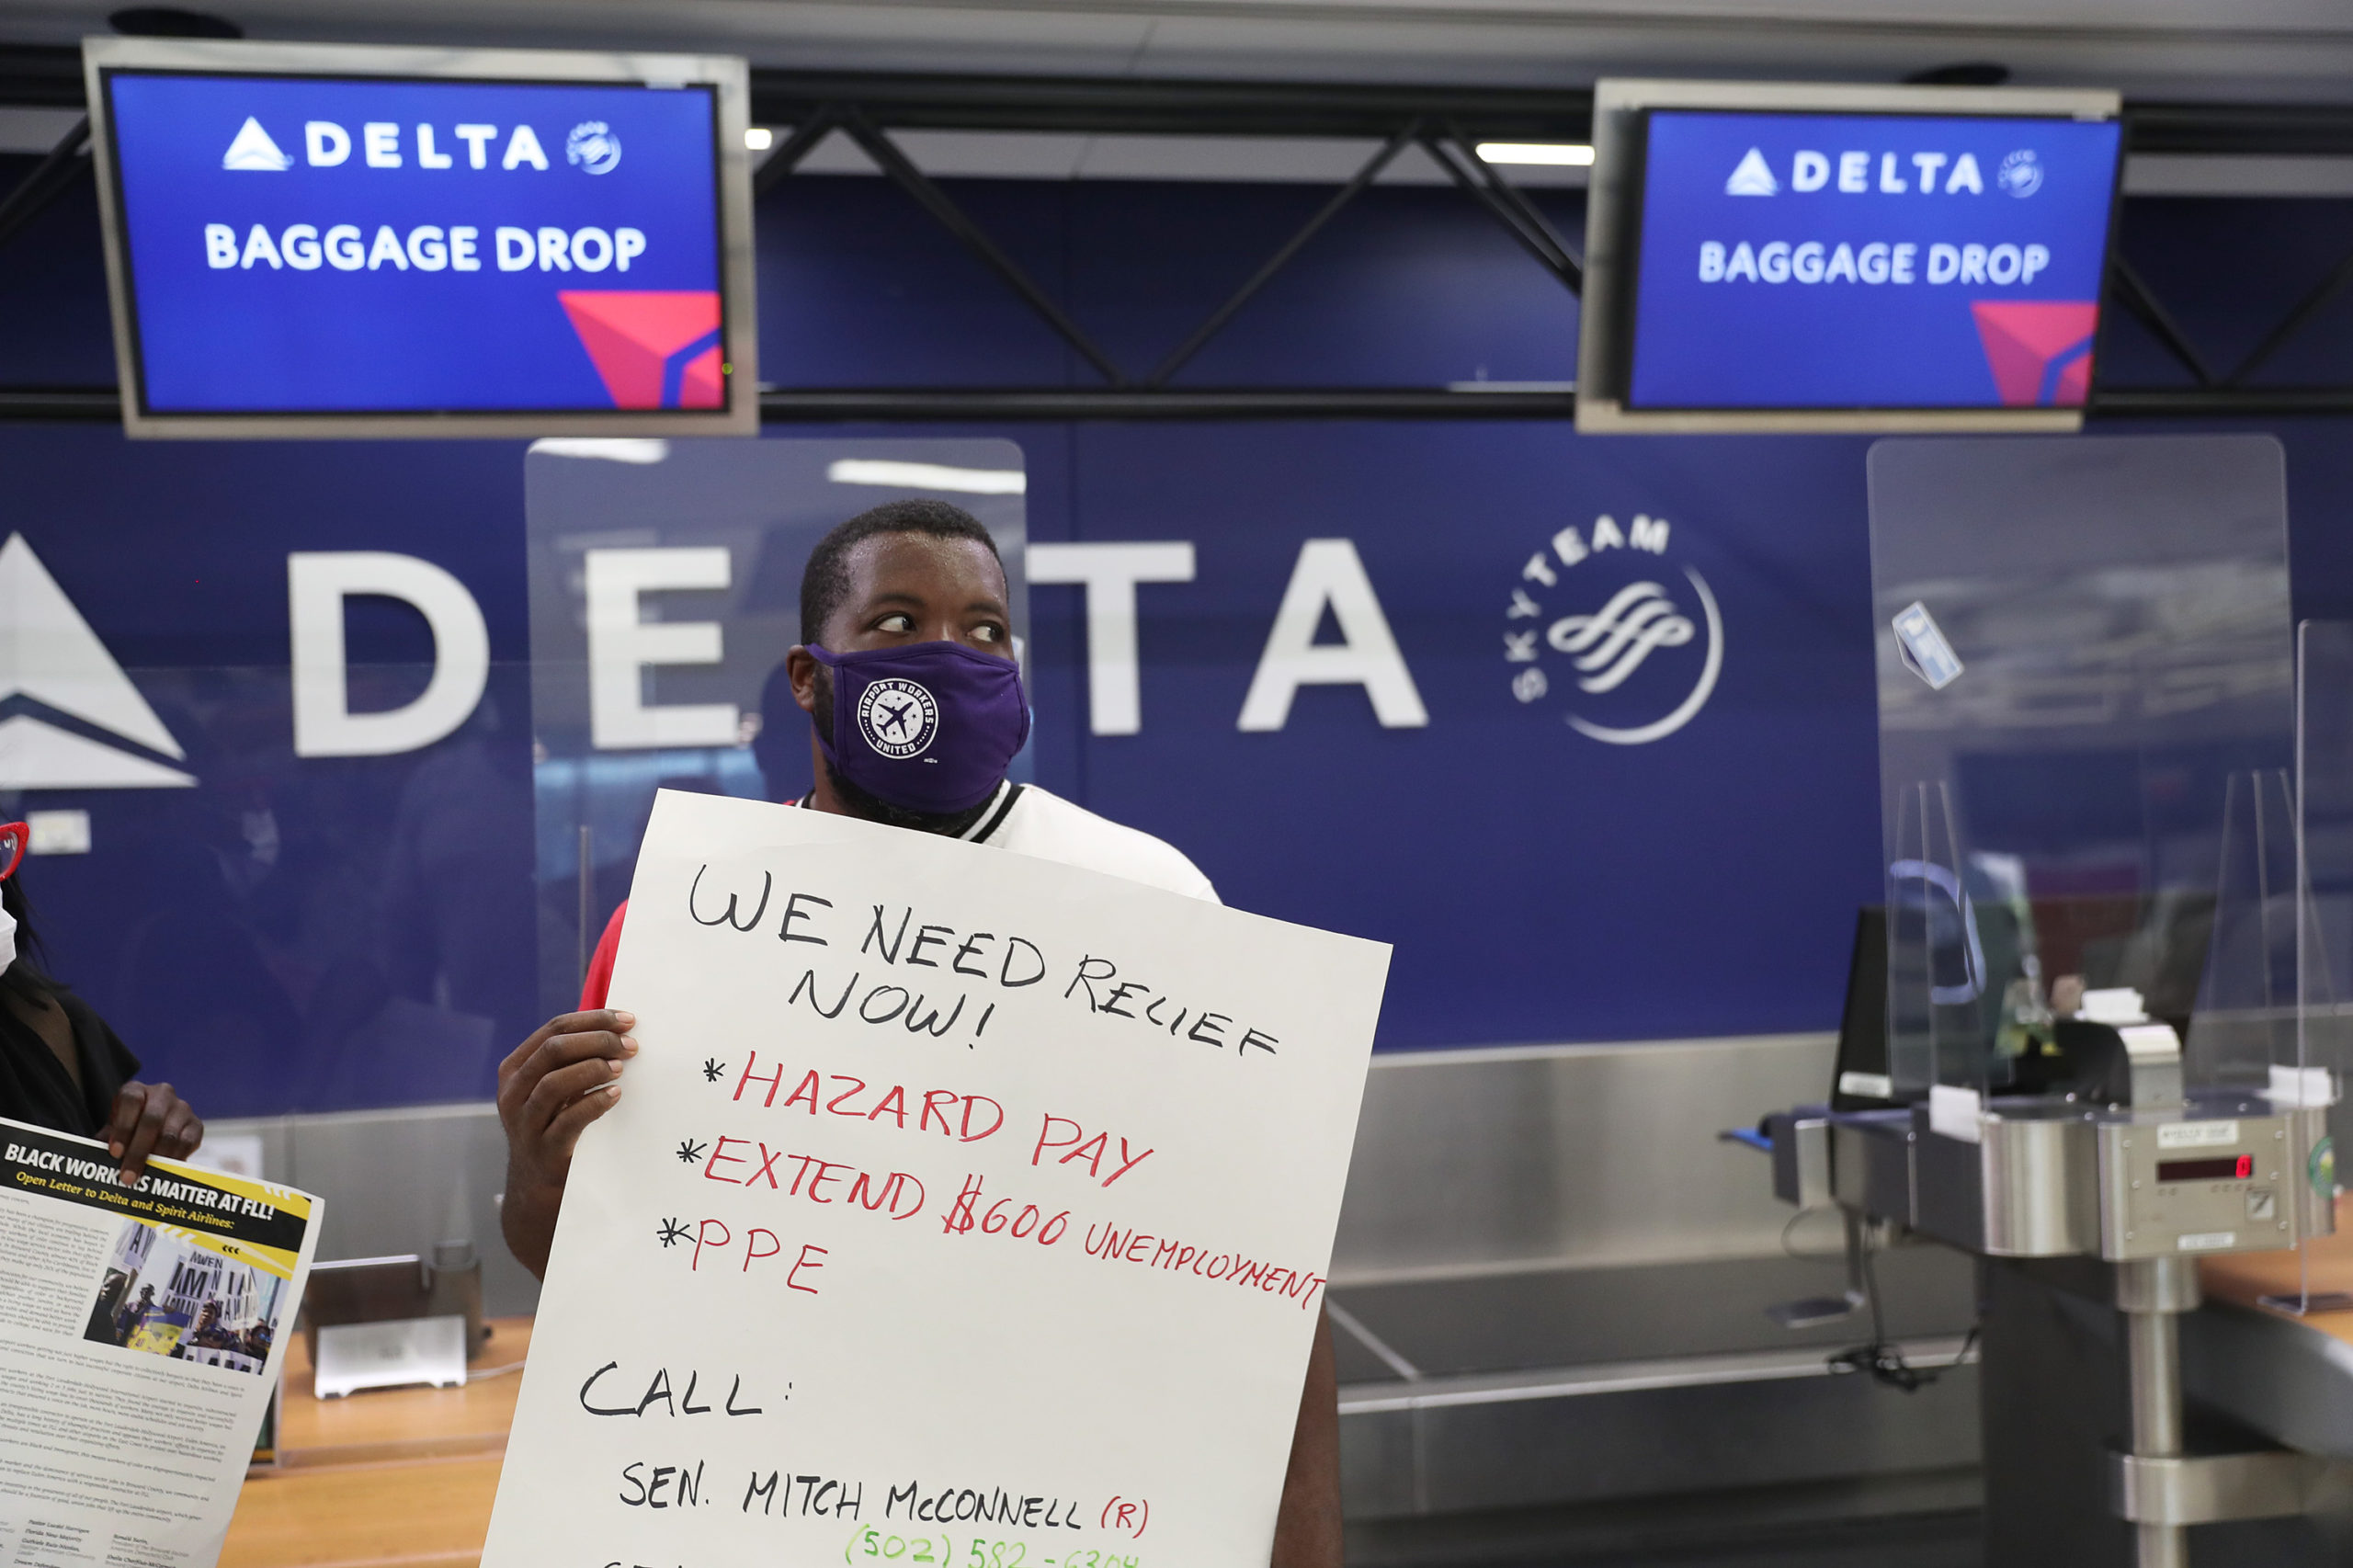 Rashad Grant joins with unemployed airport workers, the Black Lives Matter Alliance of Broward and other supporters to ask that Delta Airlines contractor, Eulen America, who the demonstrators say received $25 million from the CARES Act, hire back their unemployed Fort Lauderdale-Hollywood International Airport workers on August 13, 2020 in Fort Lauderdale, Florida. They are also asking that U.S. Senators pass the HEROES Act that provides PPE, essential pay and extended unemployment benefits for essential workers. (Photo by Joe Raedle/Getty Images)